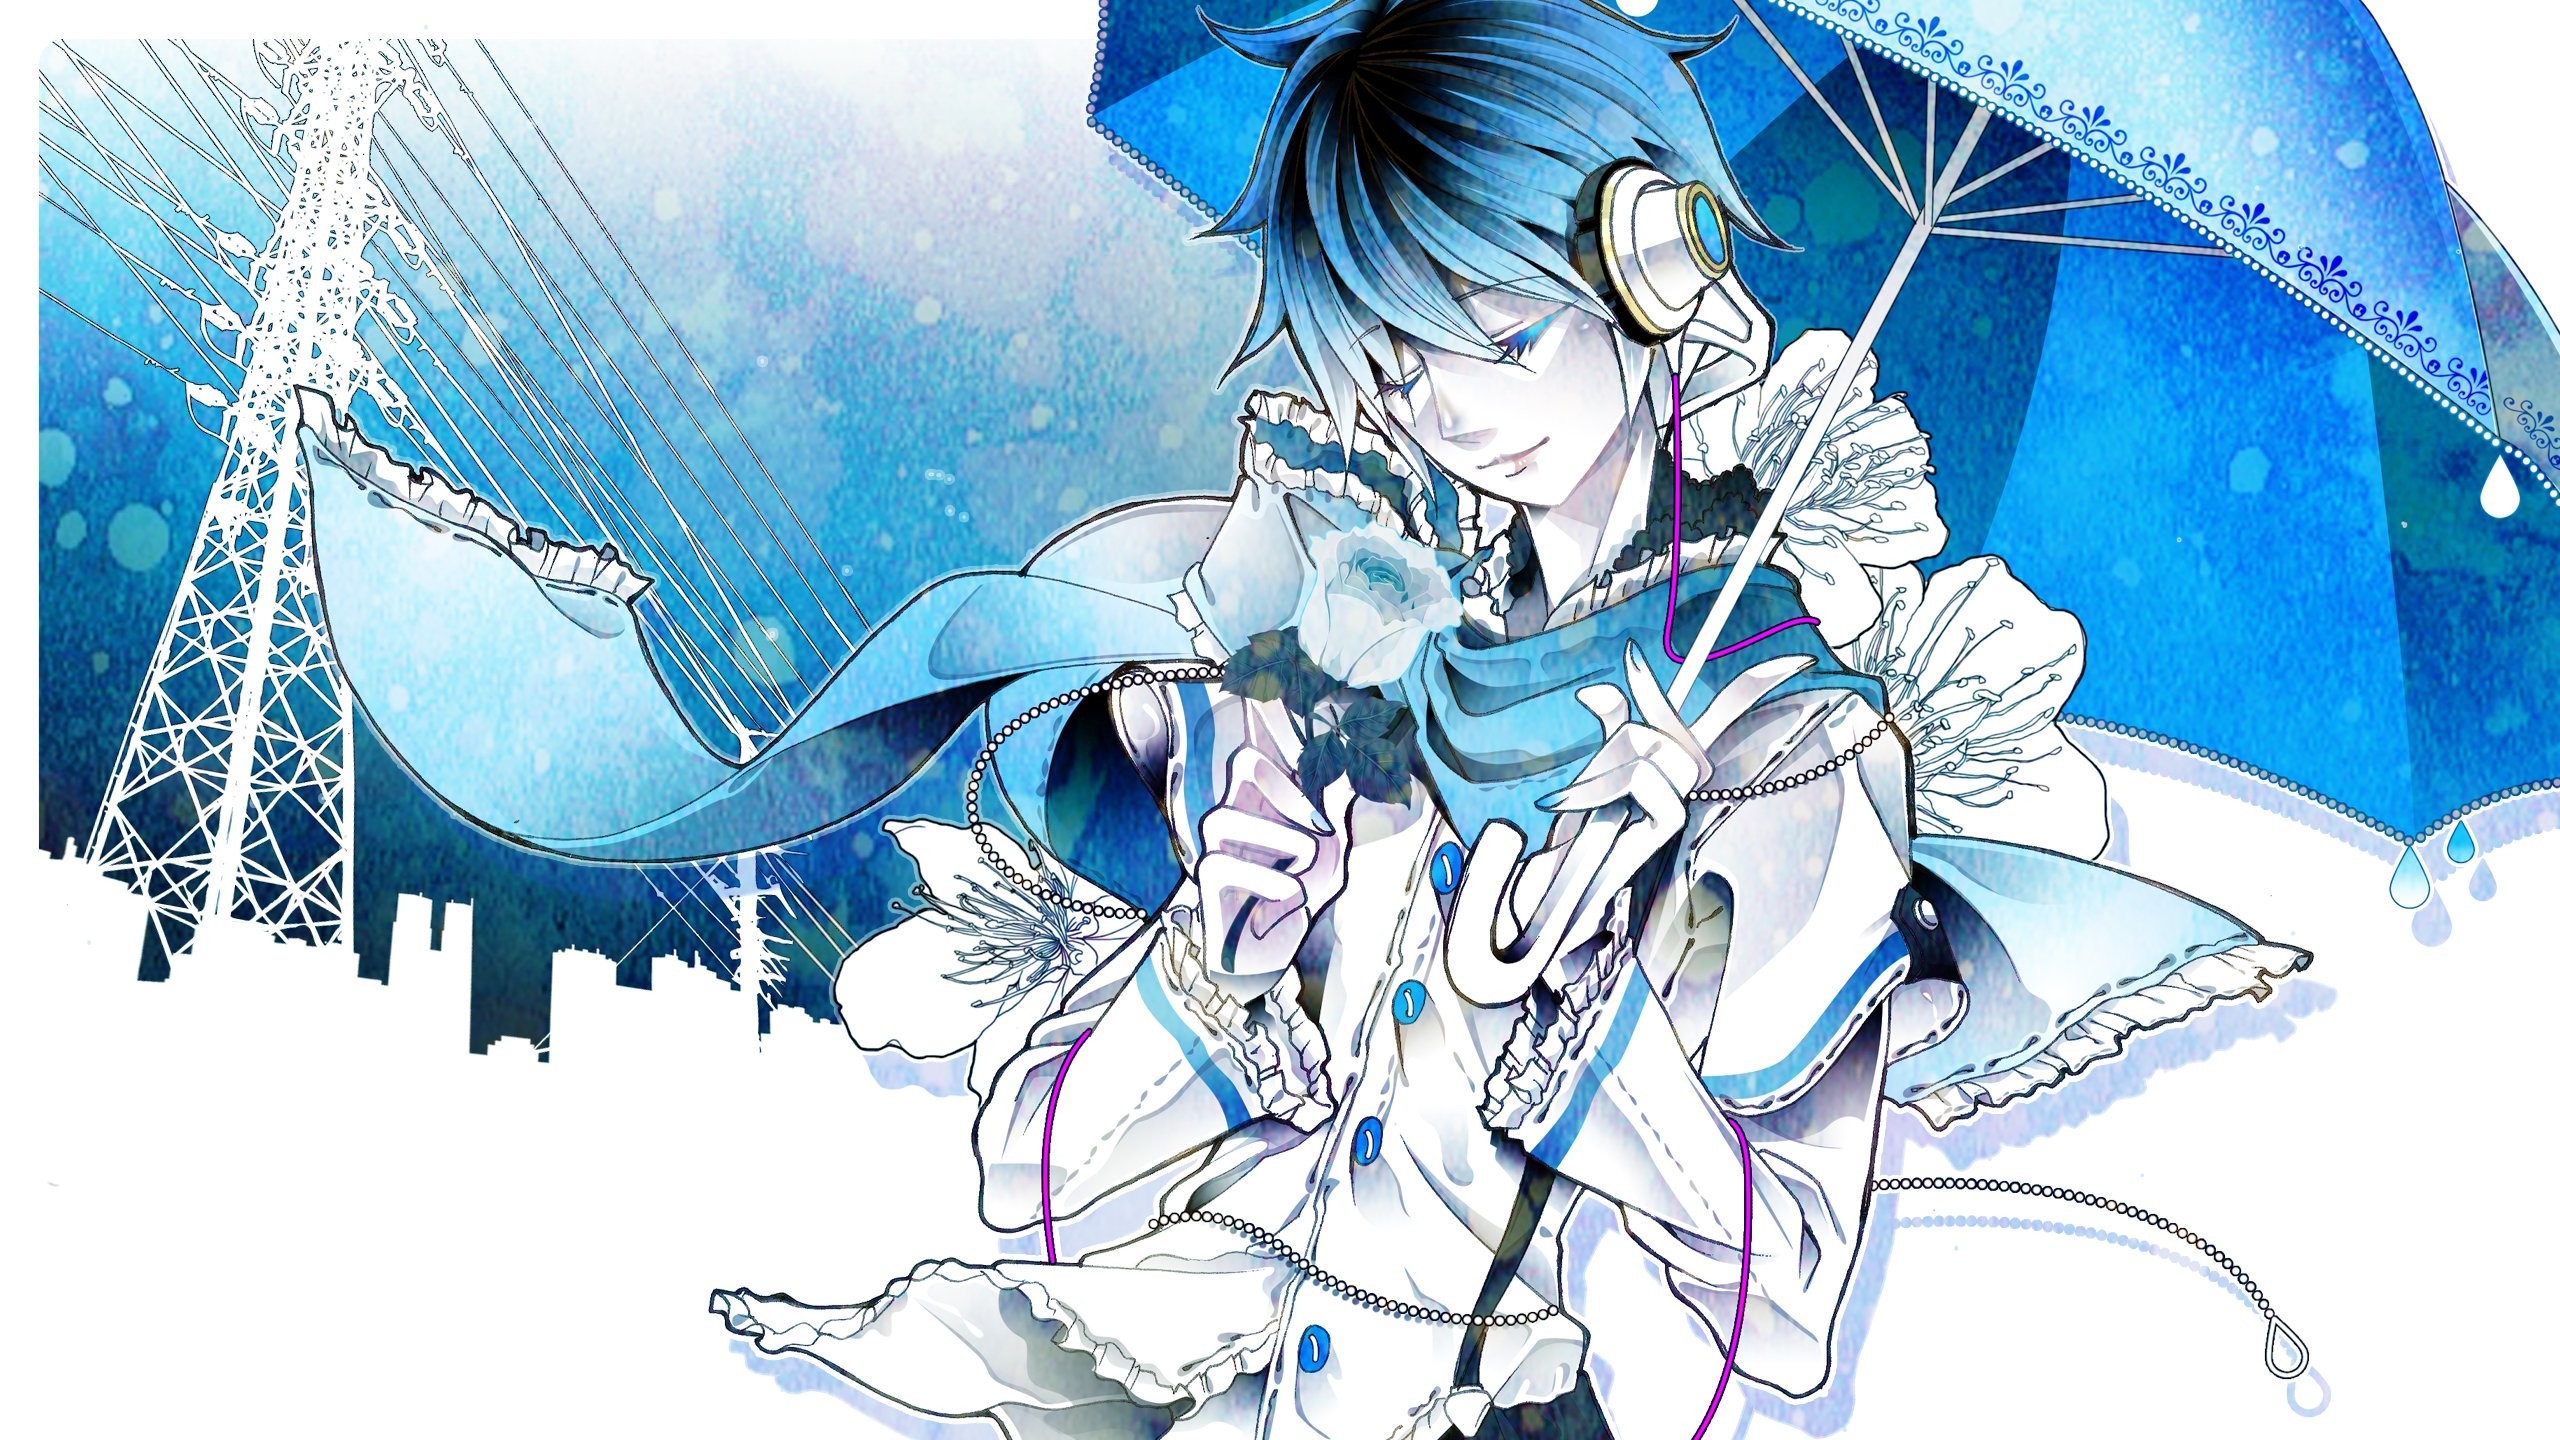 2560x1440 HD Kaito Vocaloid Backgrounds | Wallpapers, Backgrounds, Images .